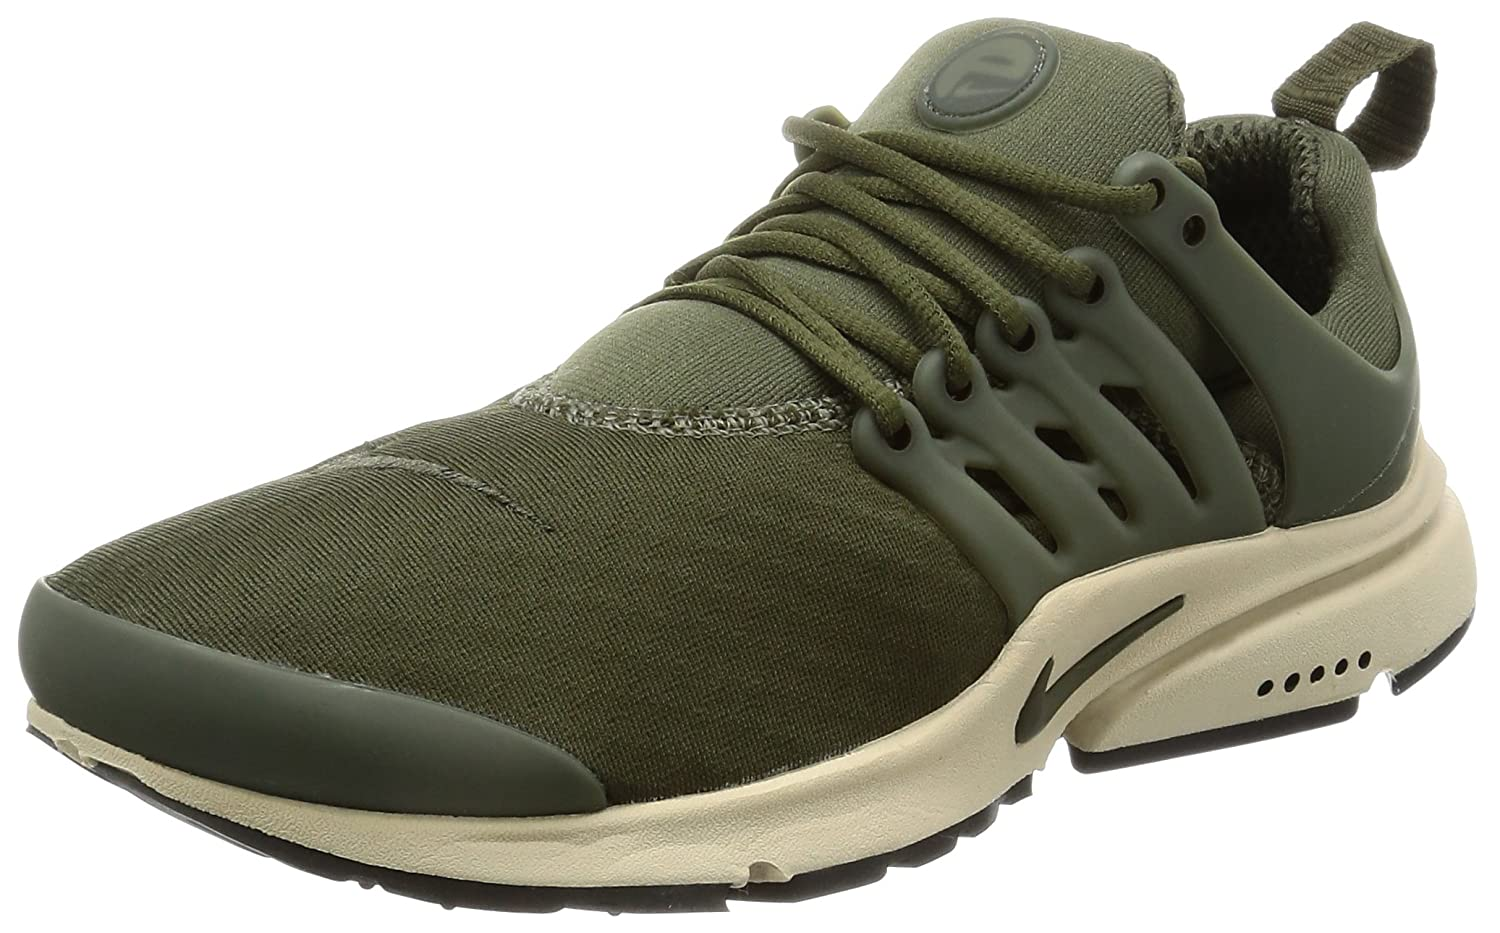 100% authentic 8b64b 3b284 Amazon.com  Nike Men s Air Presto Essential  Nike  Shoes